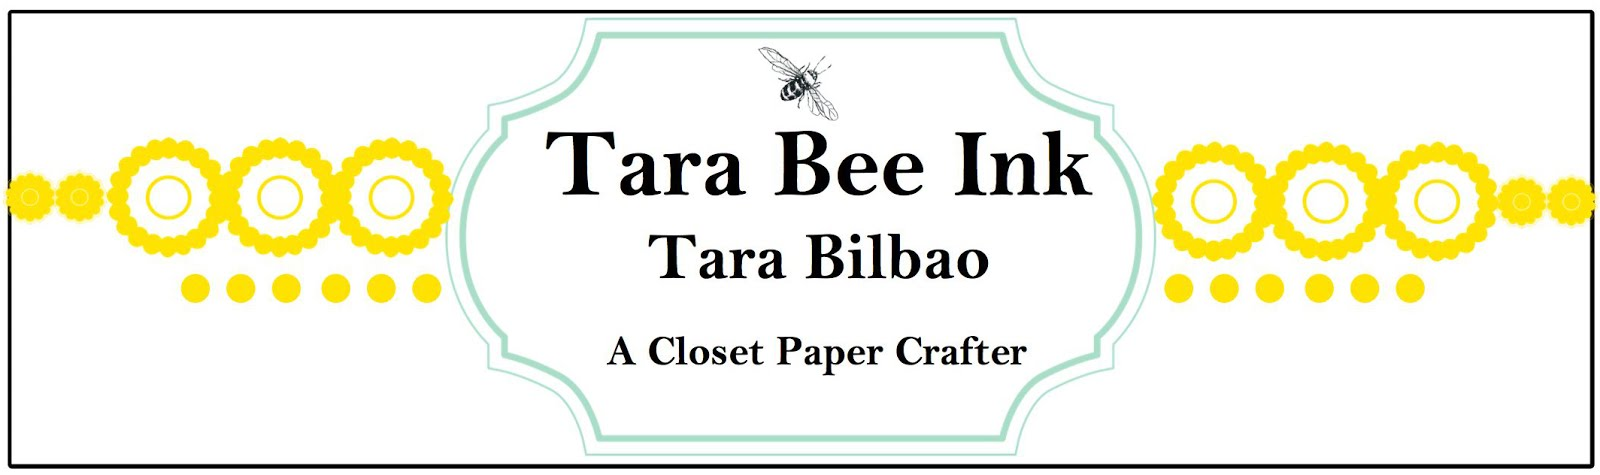 Tara Bee Ink